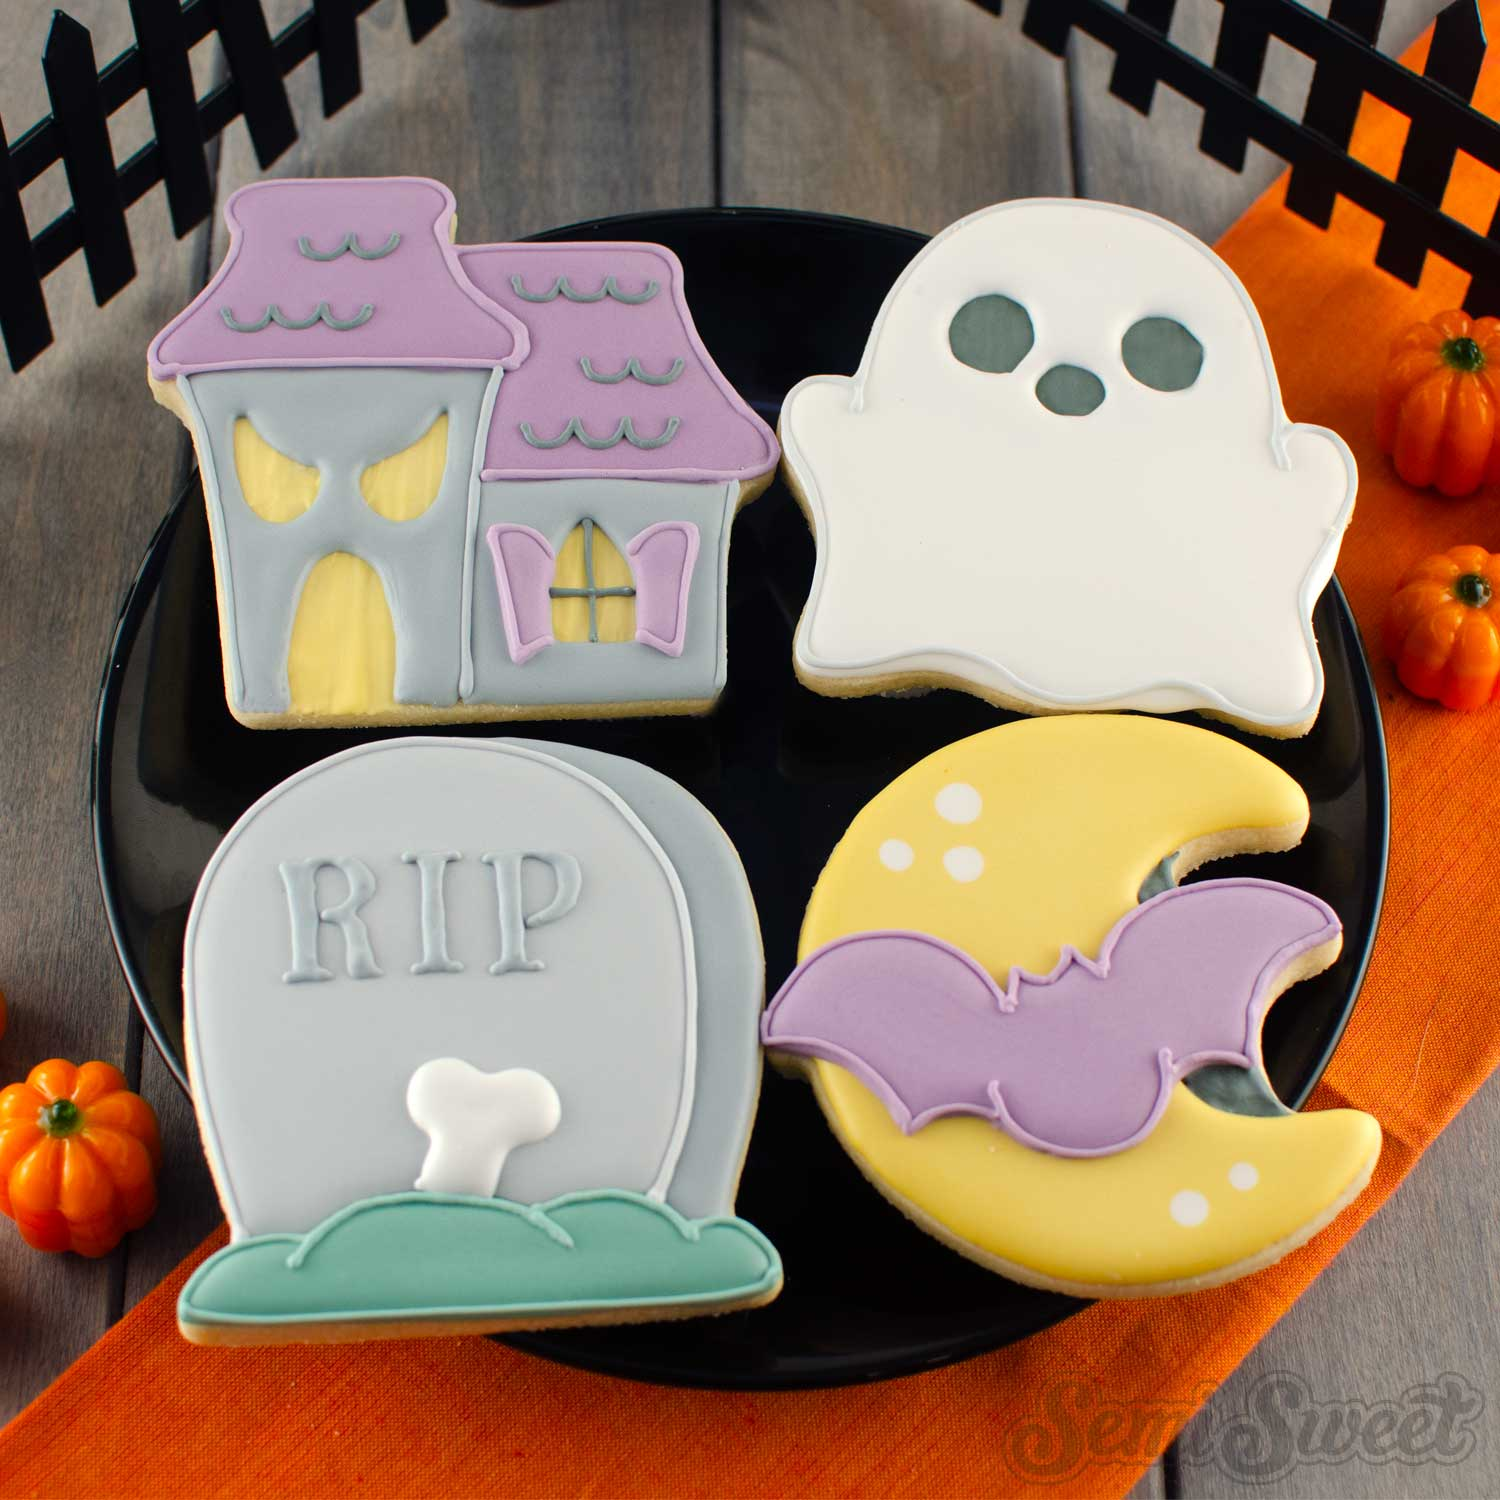 How to Make Simple Haunted House Cookies